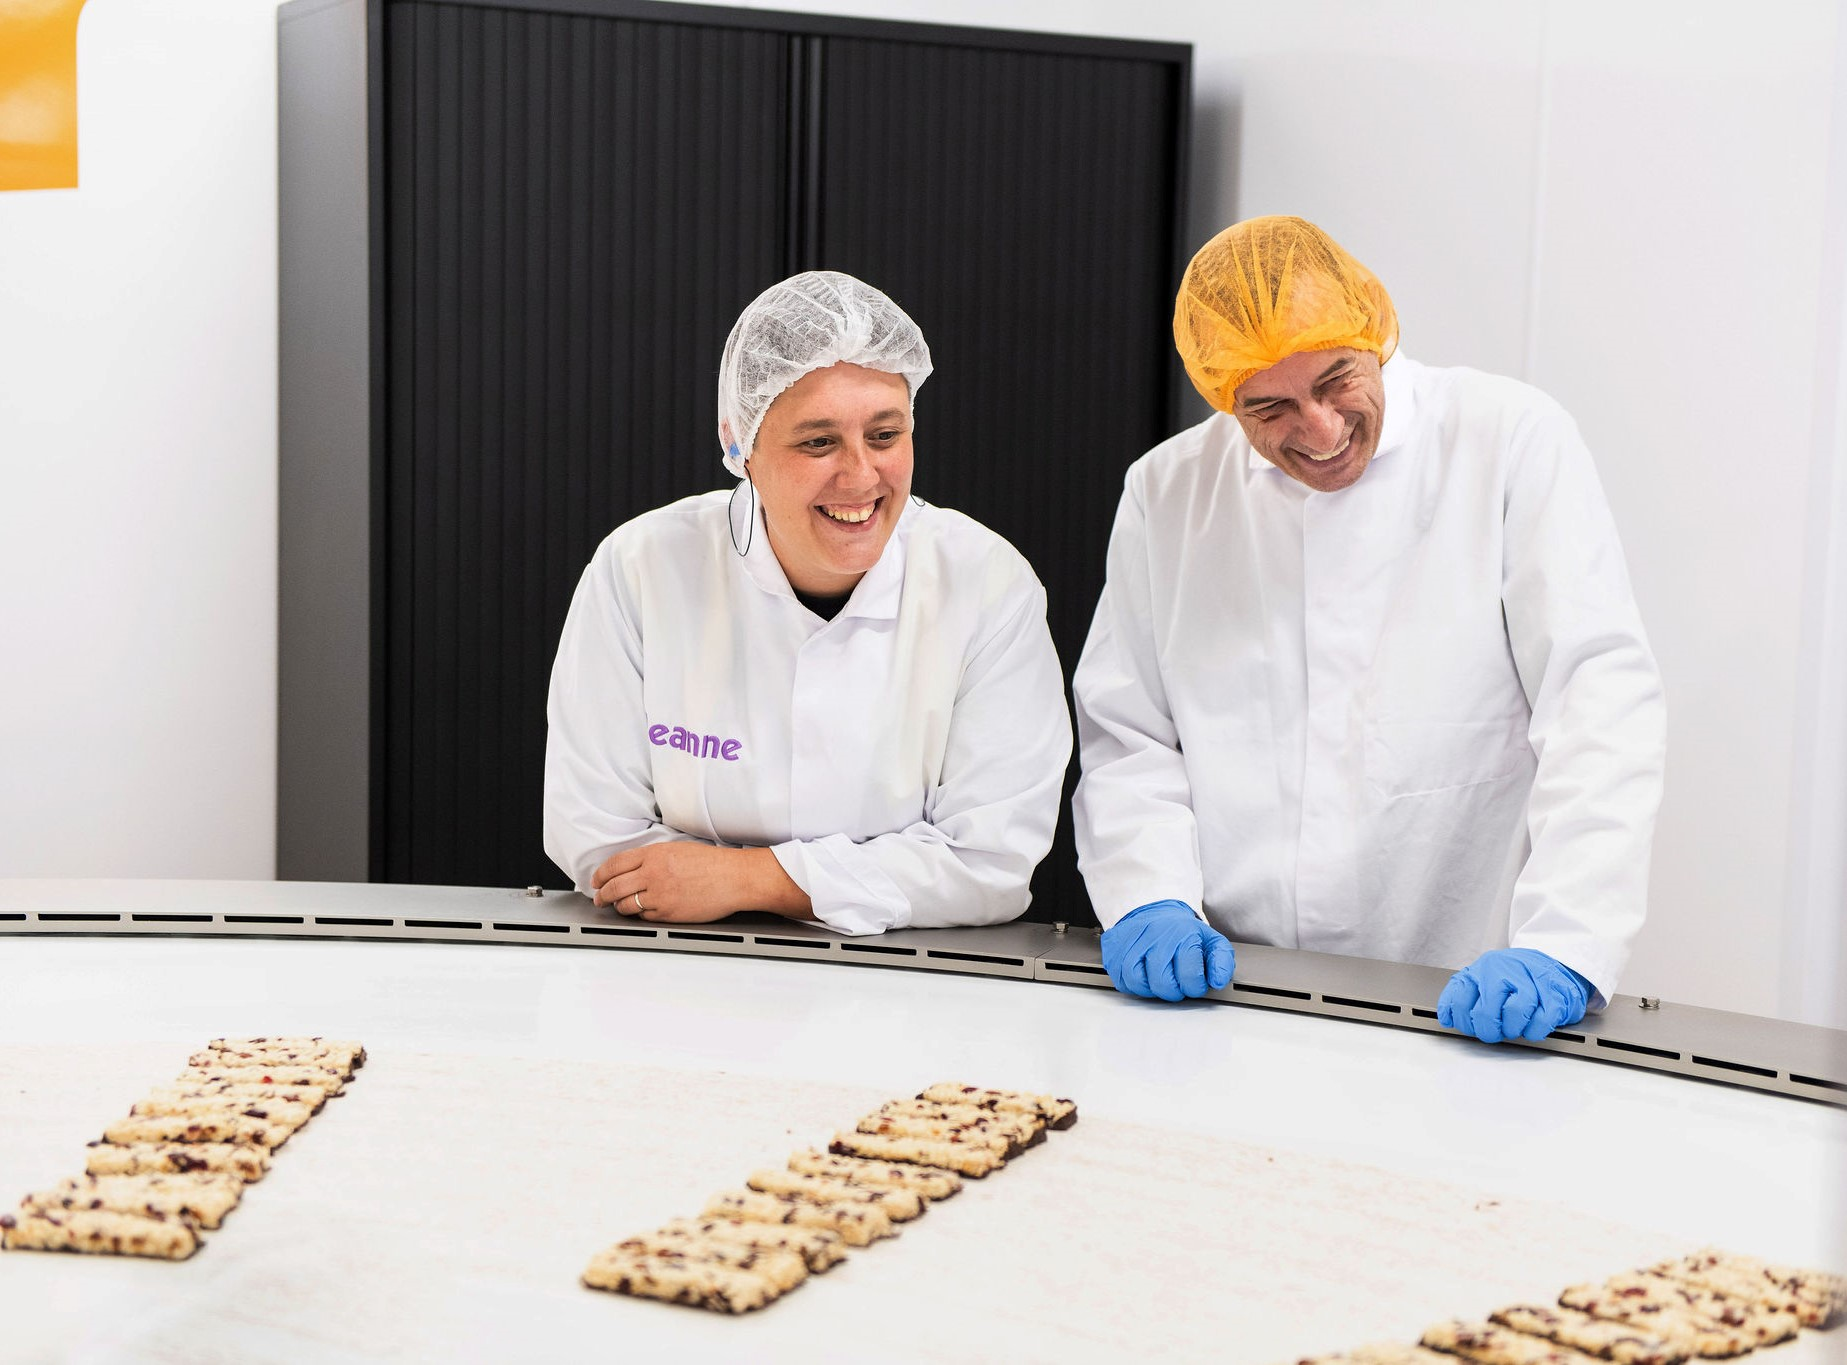 Focus: Raising the bar for healthier snack production